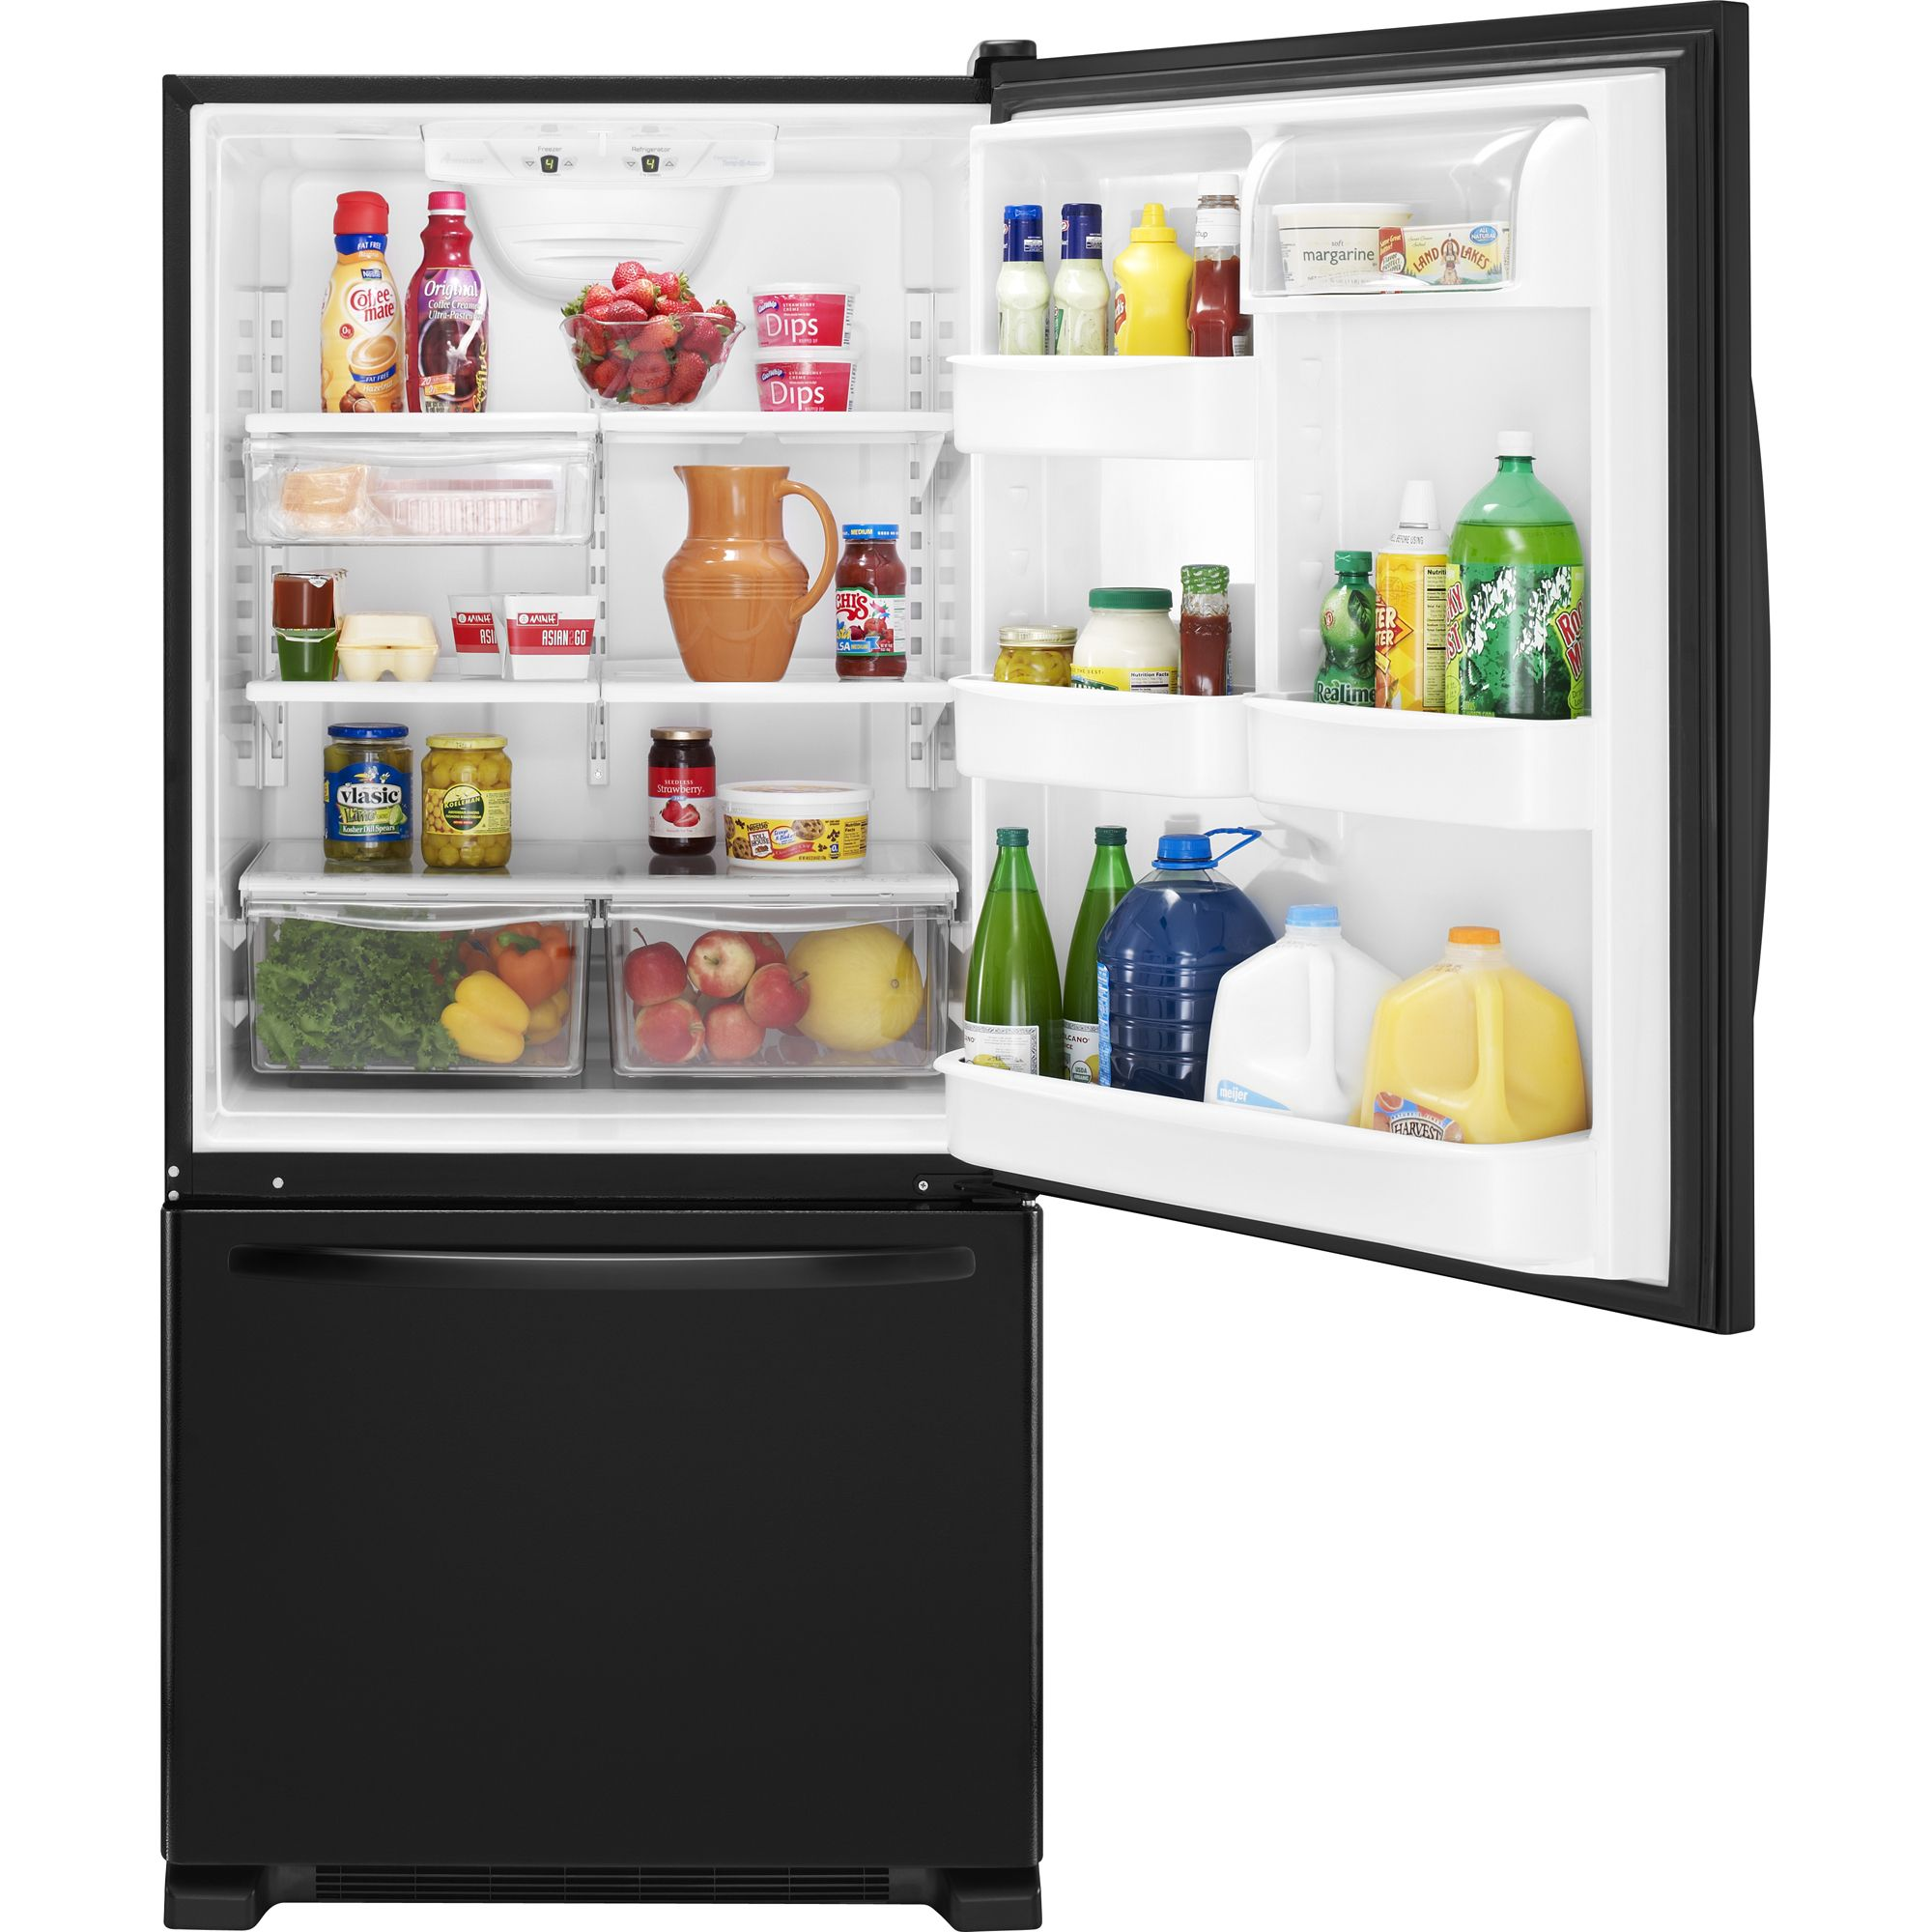 Amana 21.9 cu. ft. Single Door Bottom Freezer Refrigerator - Black